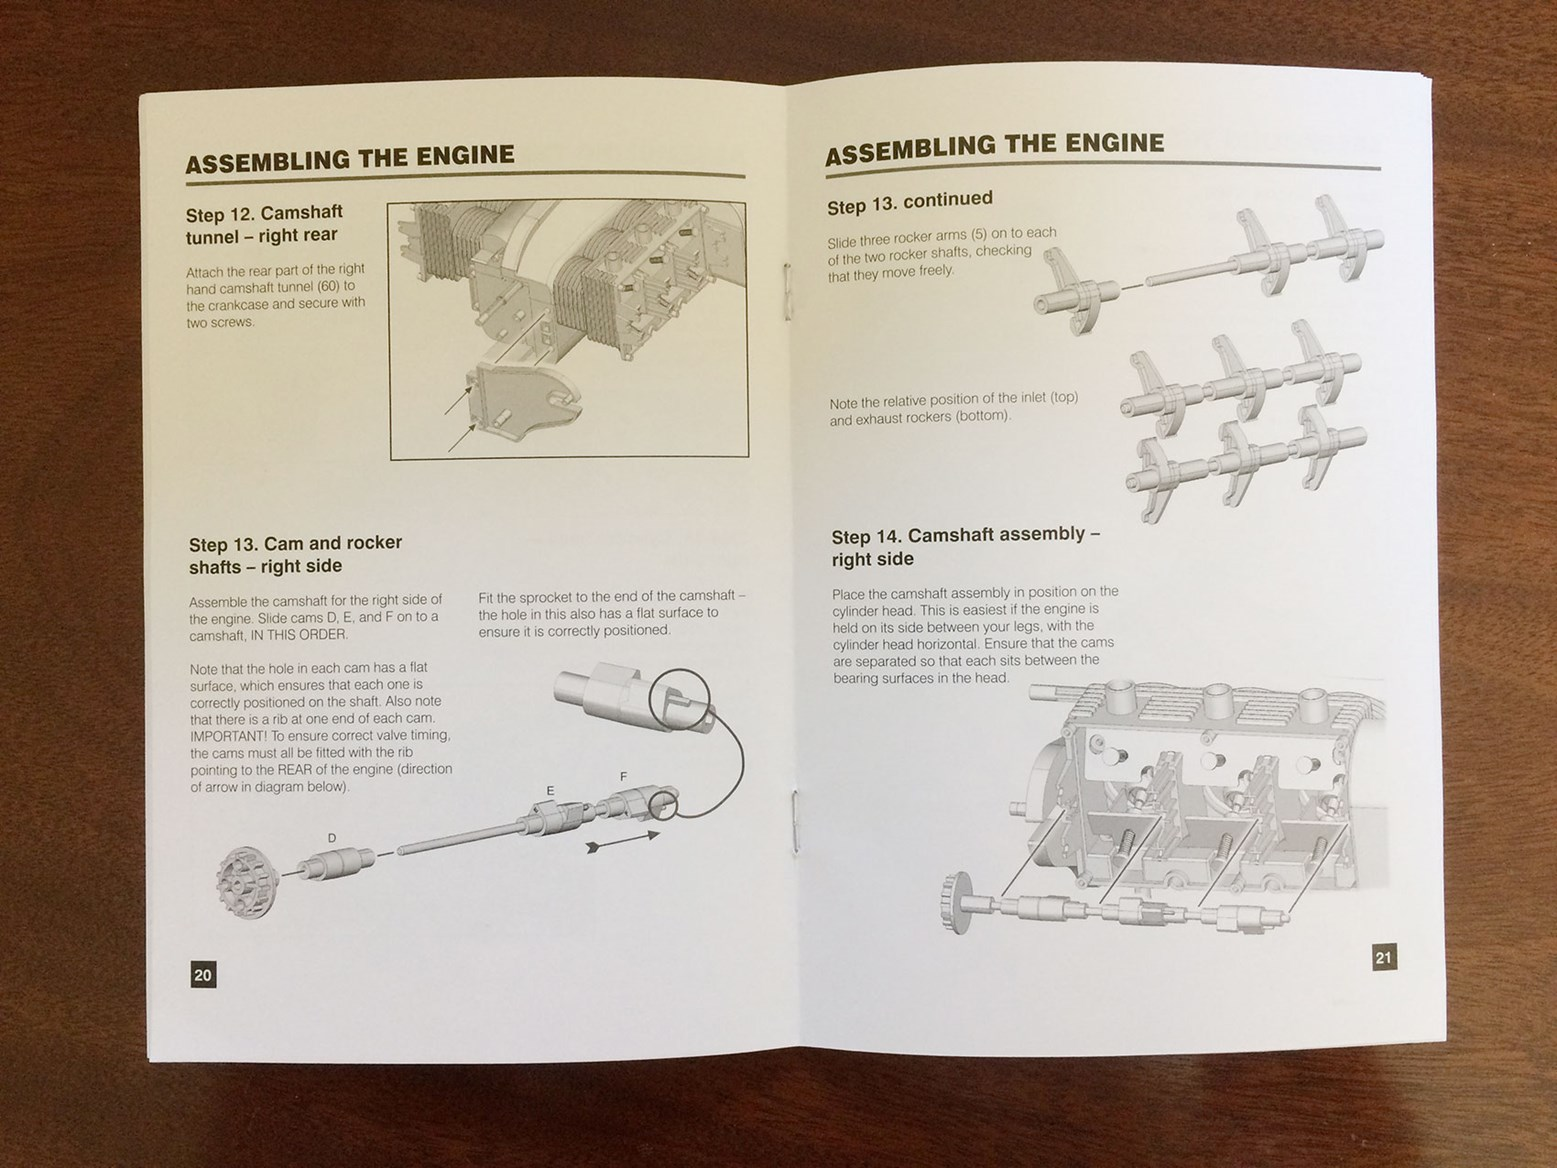 ... Instruction manual commendably clear throughout